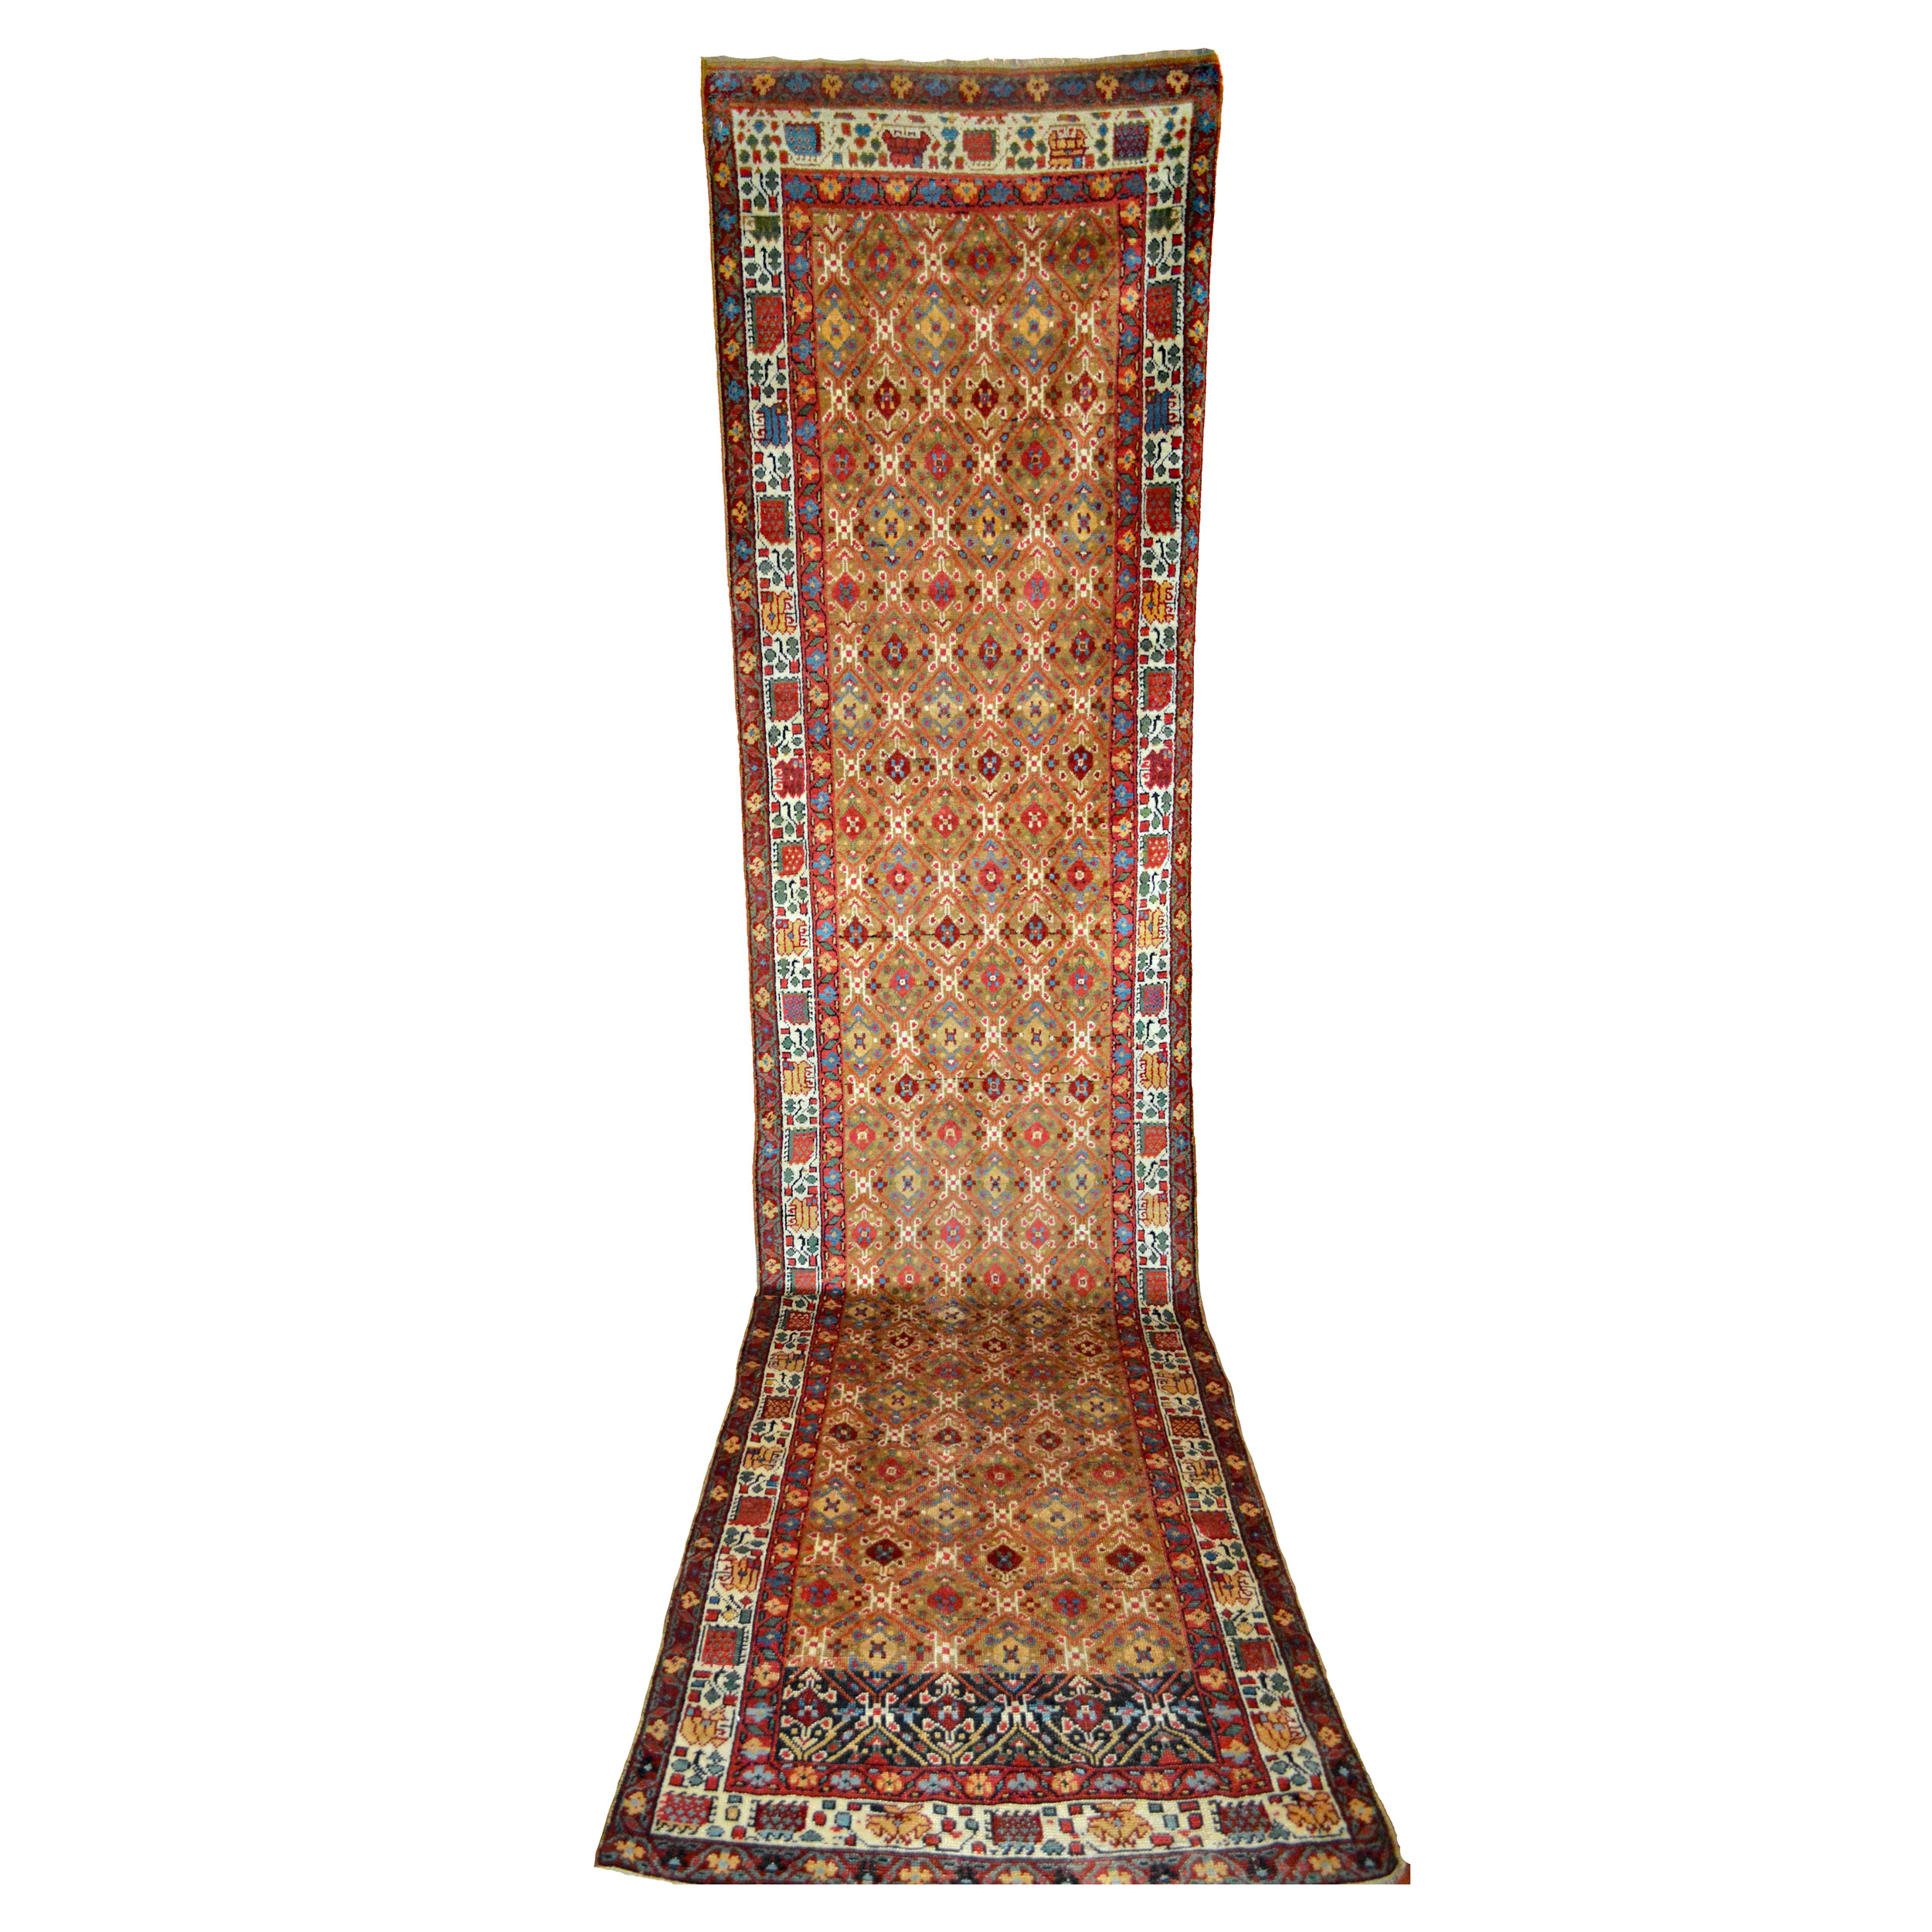 Antique Northwest Persian runner rug with camel color field, circa 1875 - Douglas Stock Gallery, Boston,MA area, New England antique Persian rugs